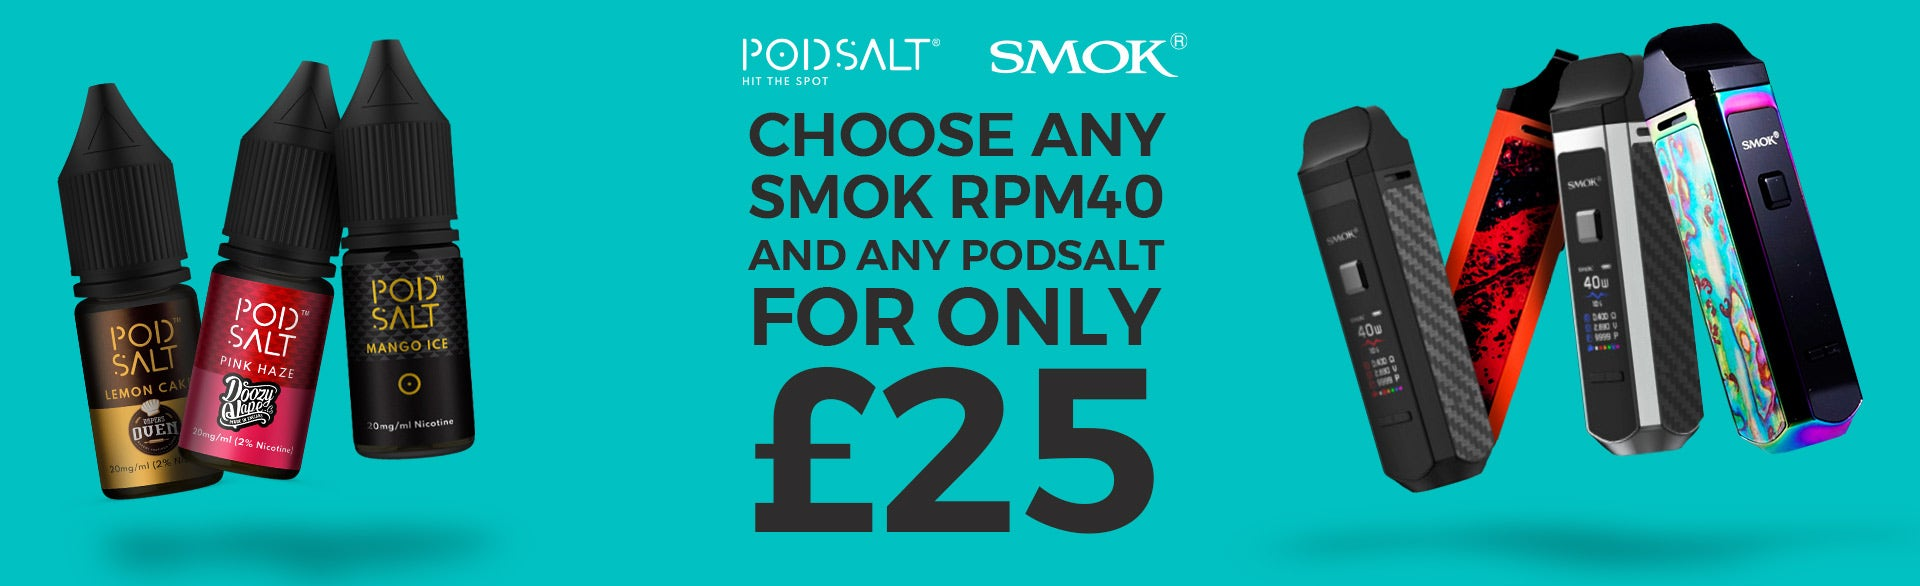 RPM40 with any Pod Salt £25